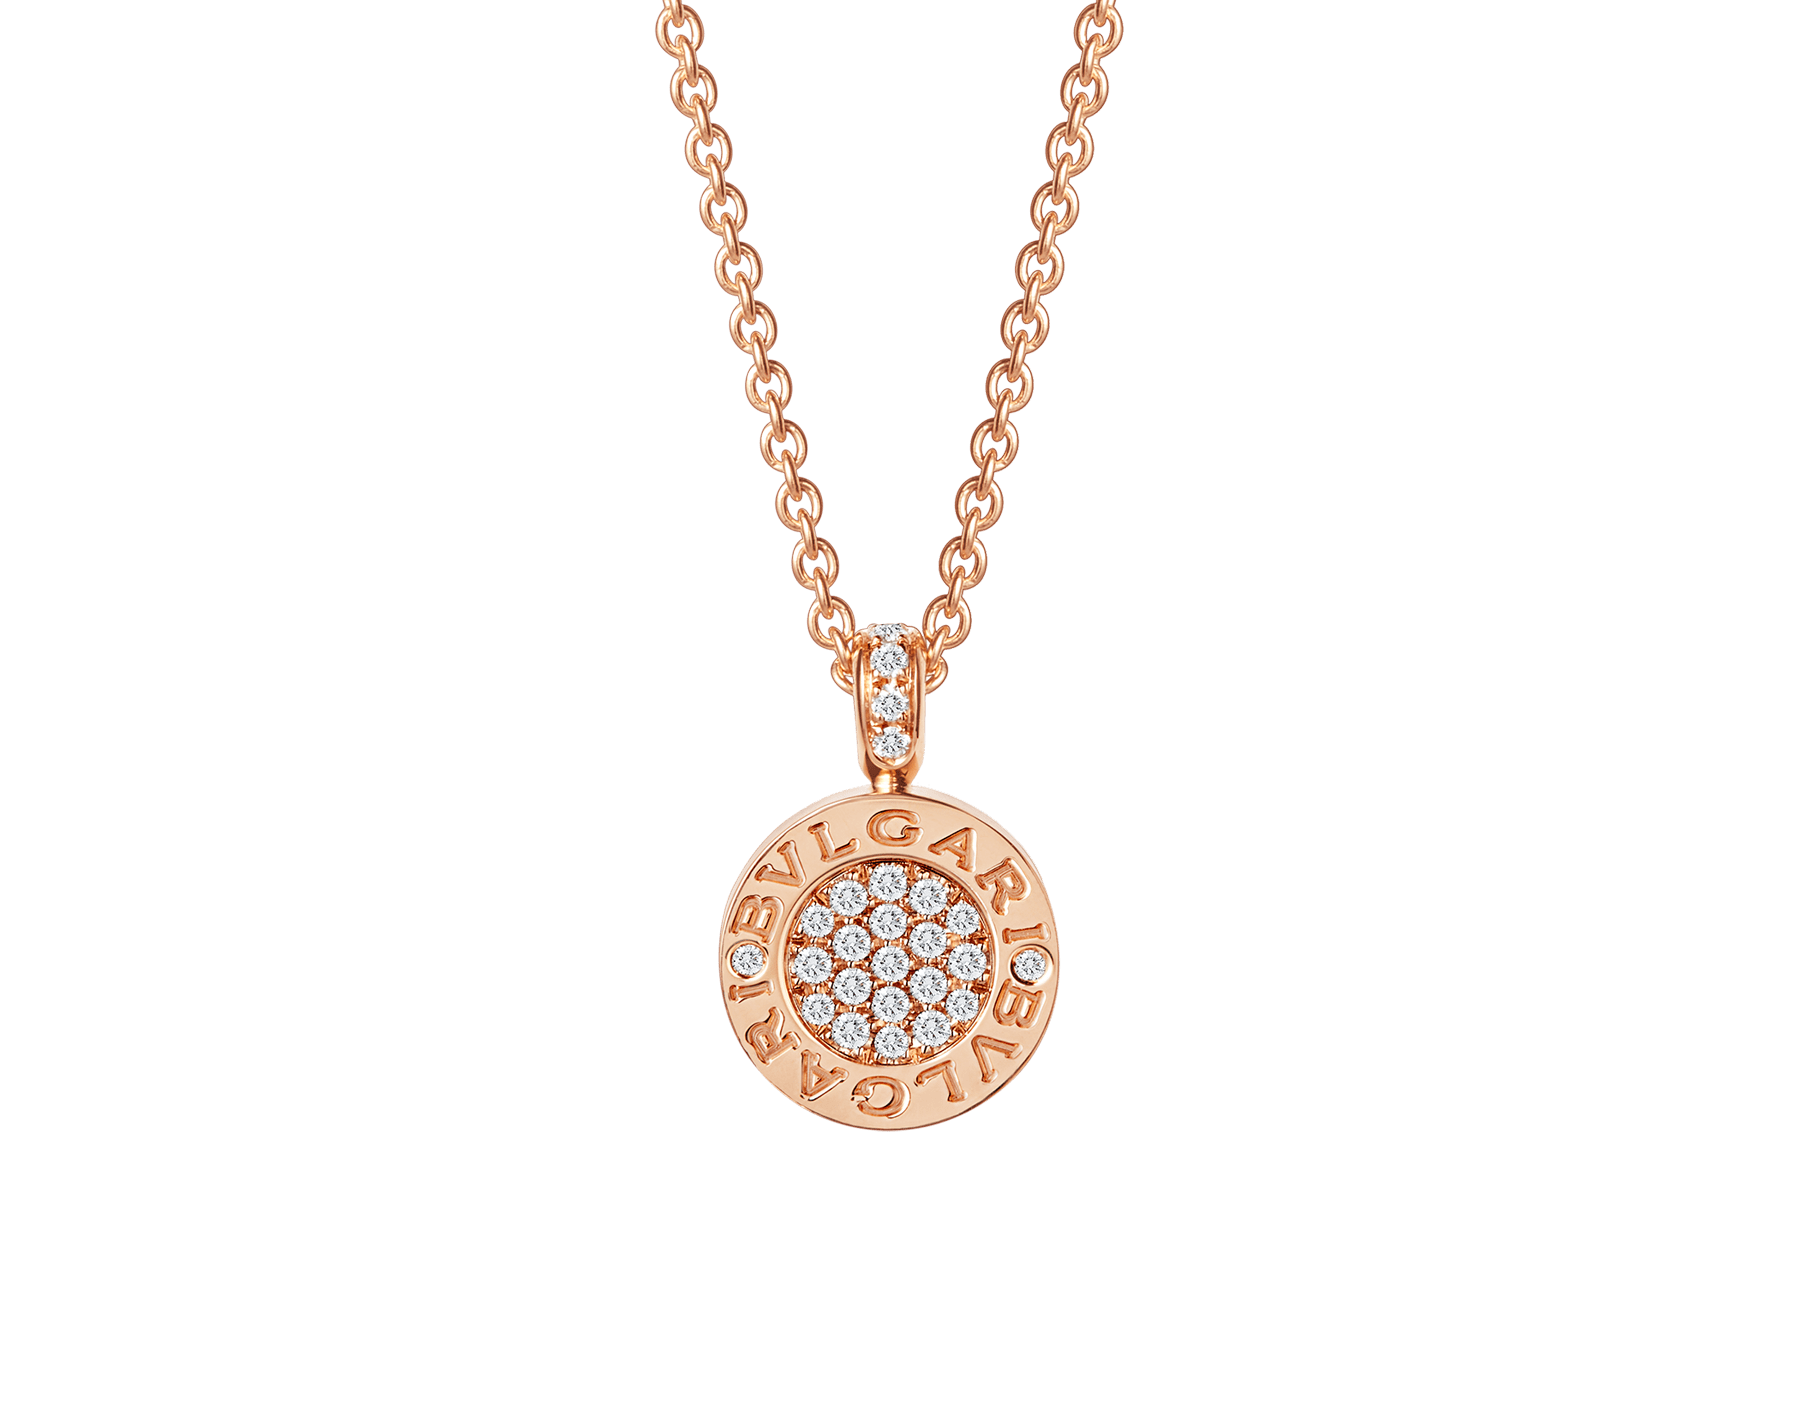 BVLGARI BVLGARI necklace with 18 kt rose gold chain and 18 rose gold pendant set with green jade and pavé diamonds 357256 image 2